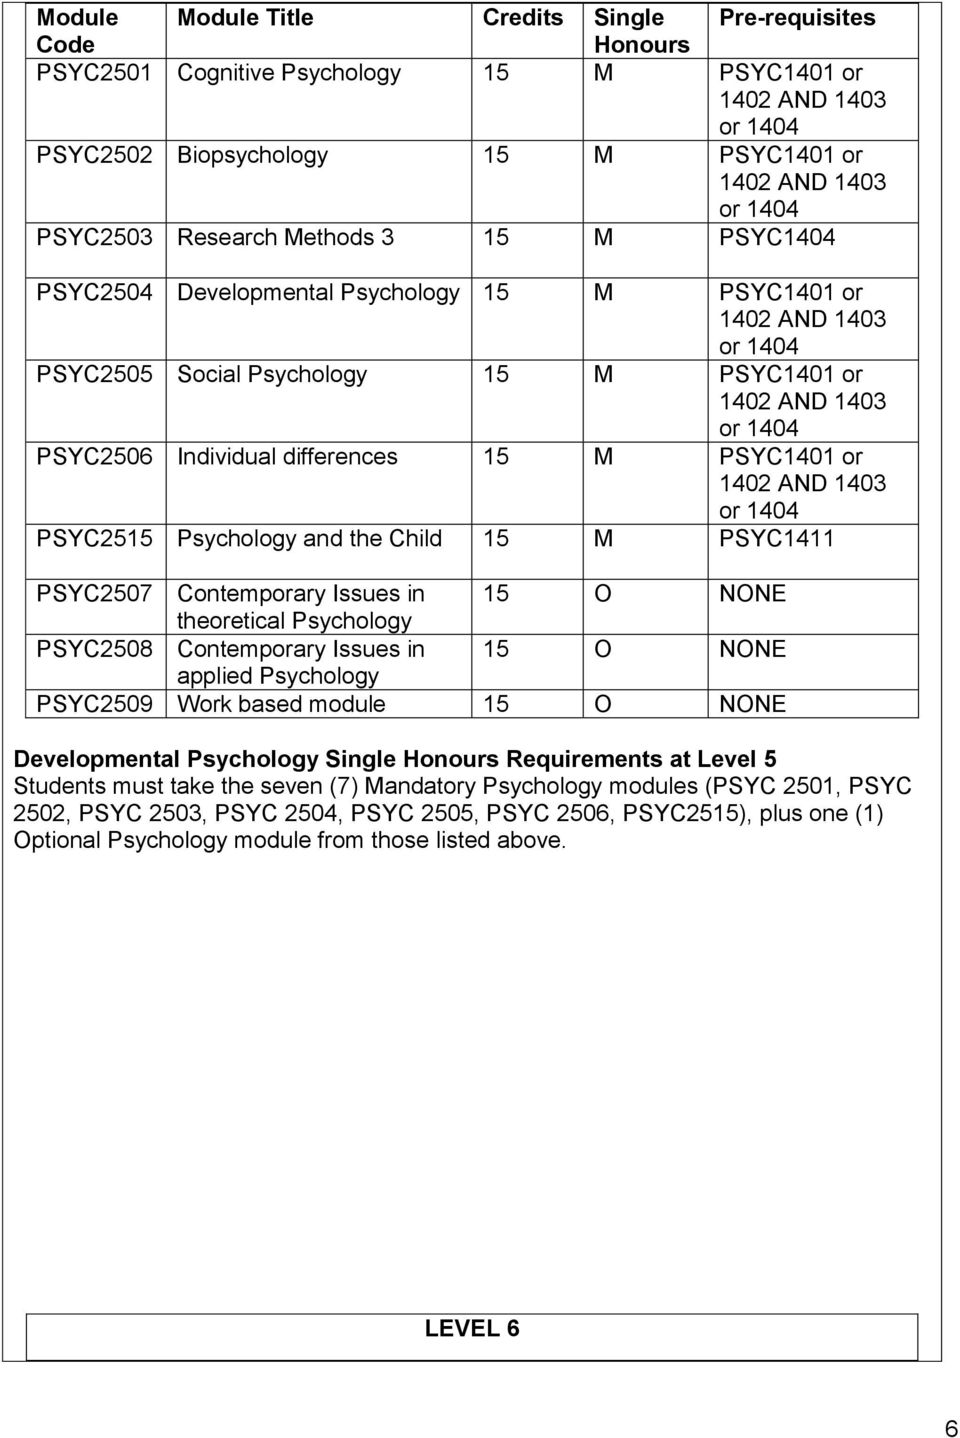 PSYC1401 or 1402 AND 1403 or 1404 PSYC2515 Psychology and the Child 15 M PSYC1411 PSYC2507 Contemporary Issues in 15 O NONE theoretical Psychology PSYC2508 Contemporary Issues in 15 O NONE applied